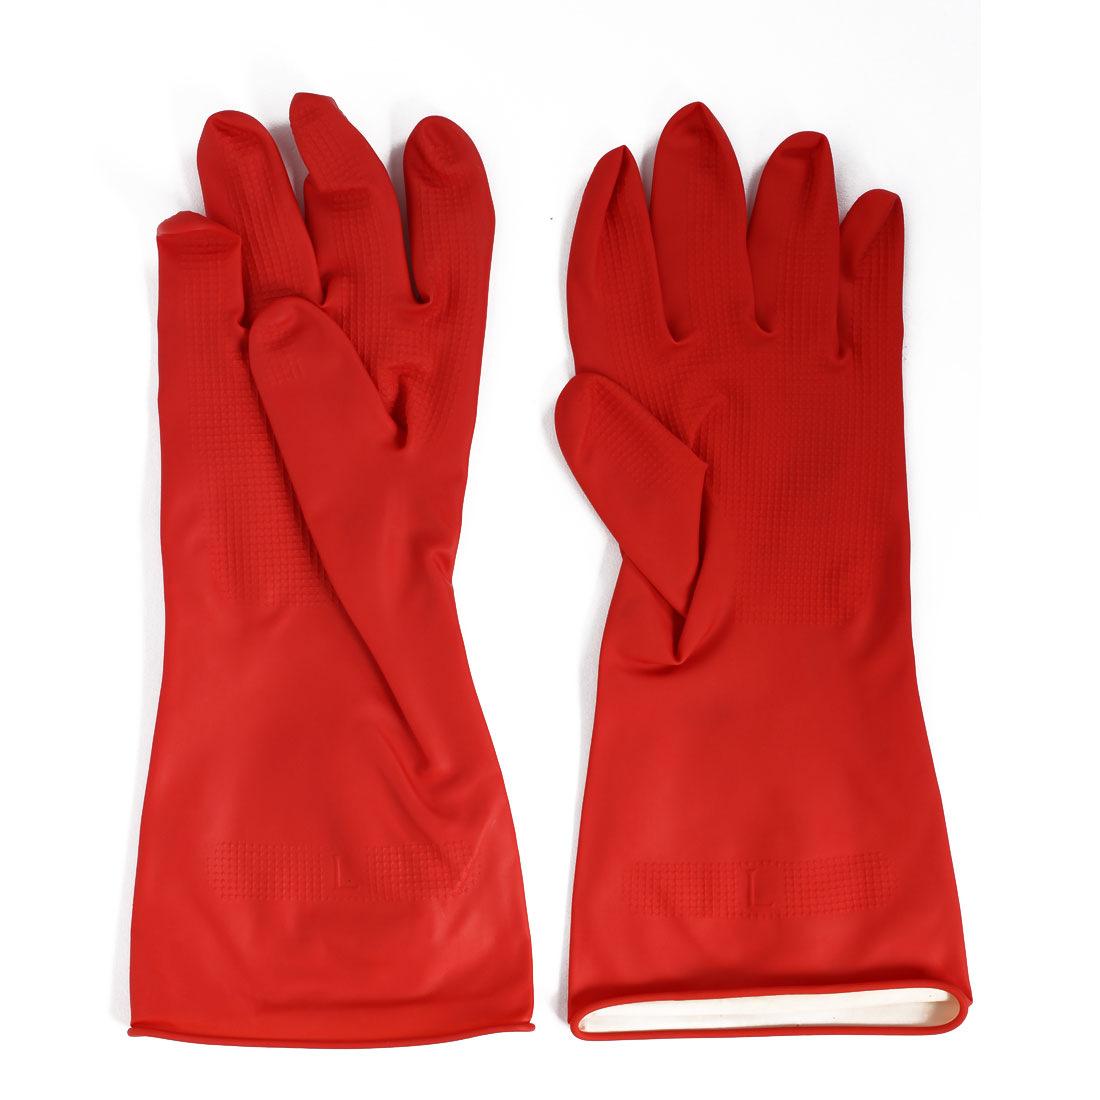 Factory Oil Resistant Waterproof Hand Protector Rubber Coated Gloves Red Pair